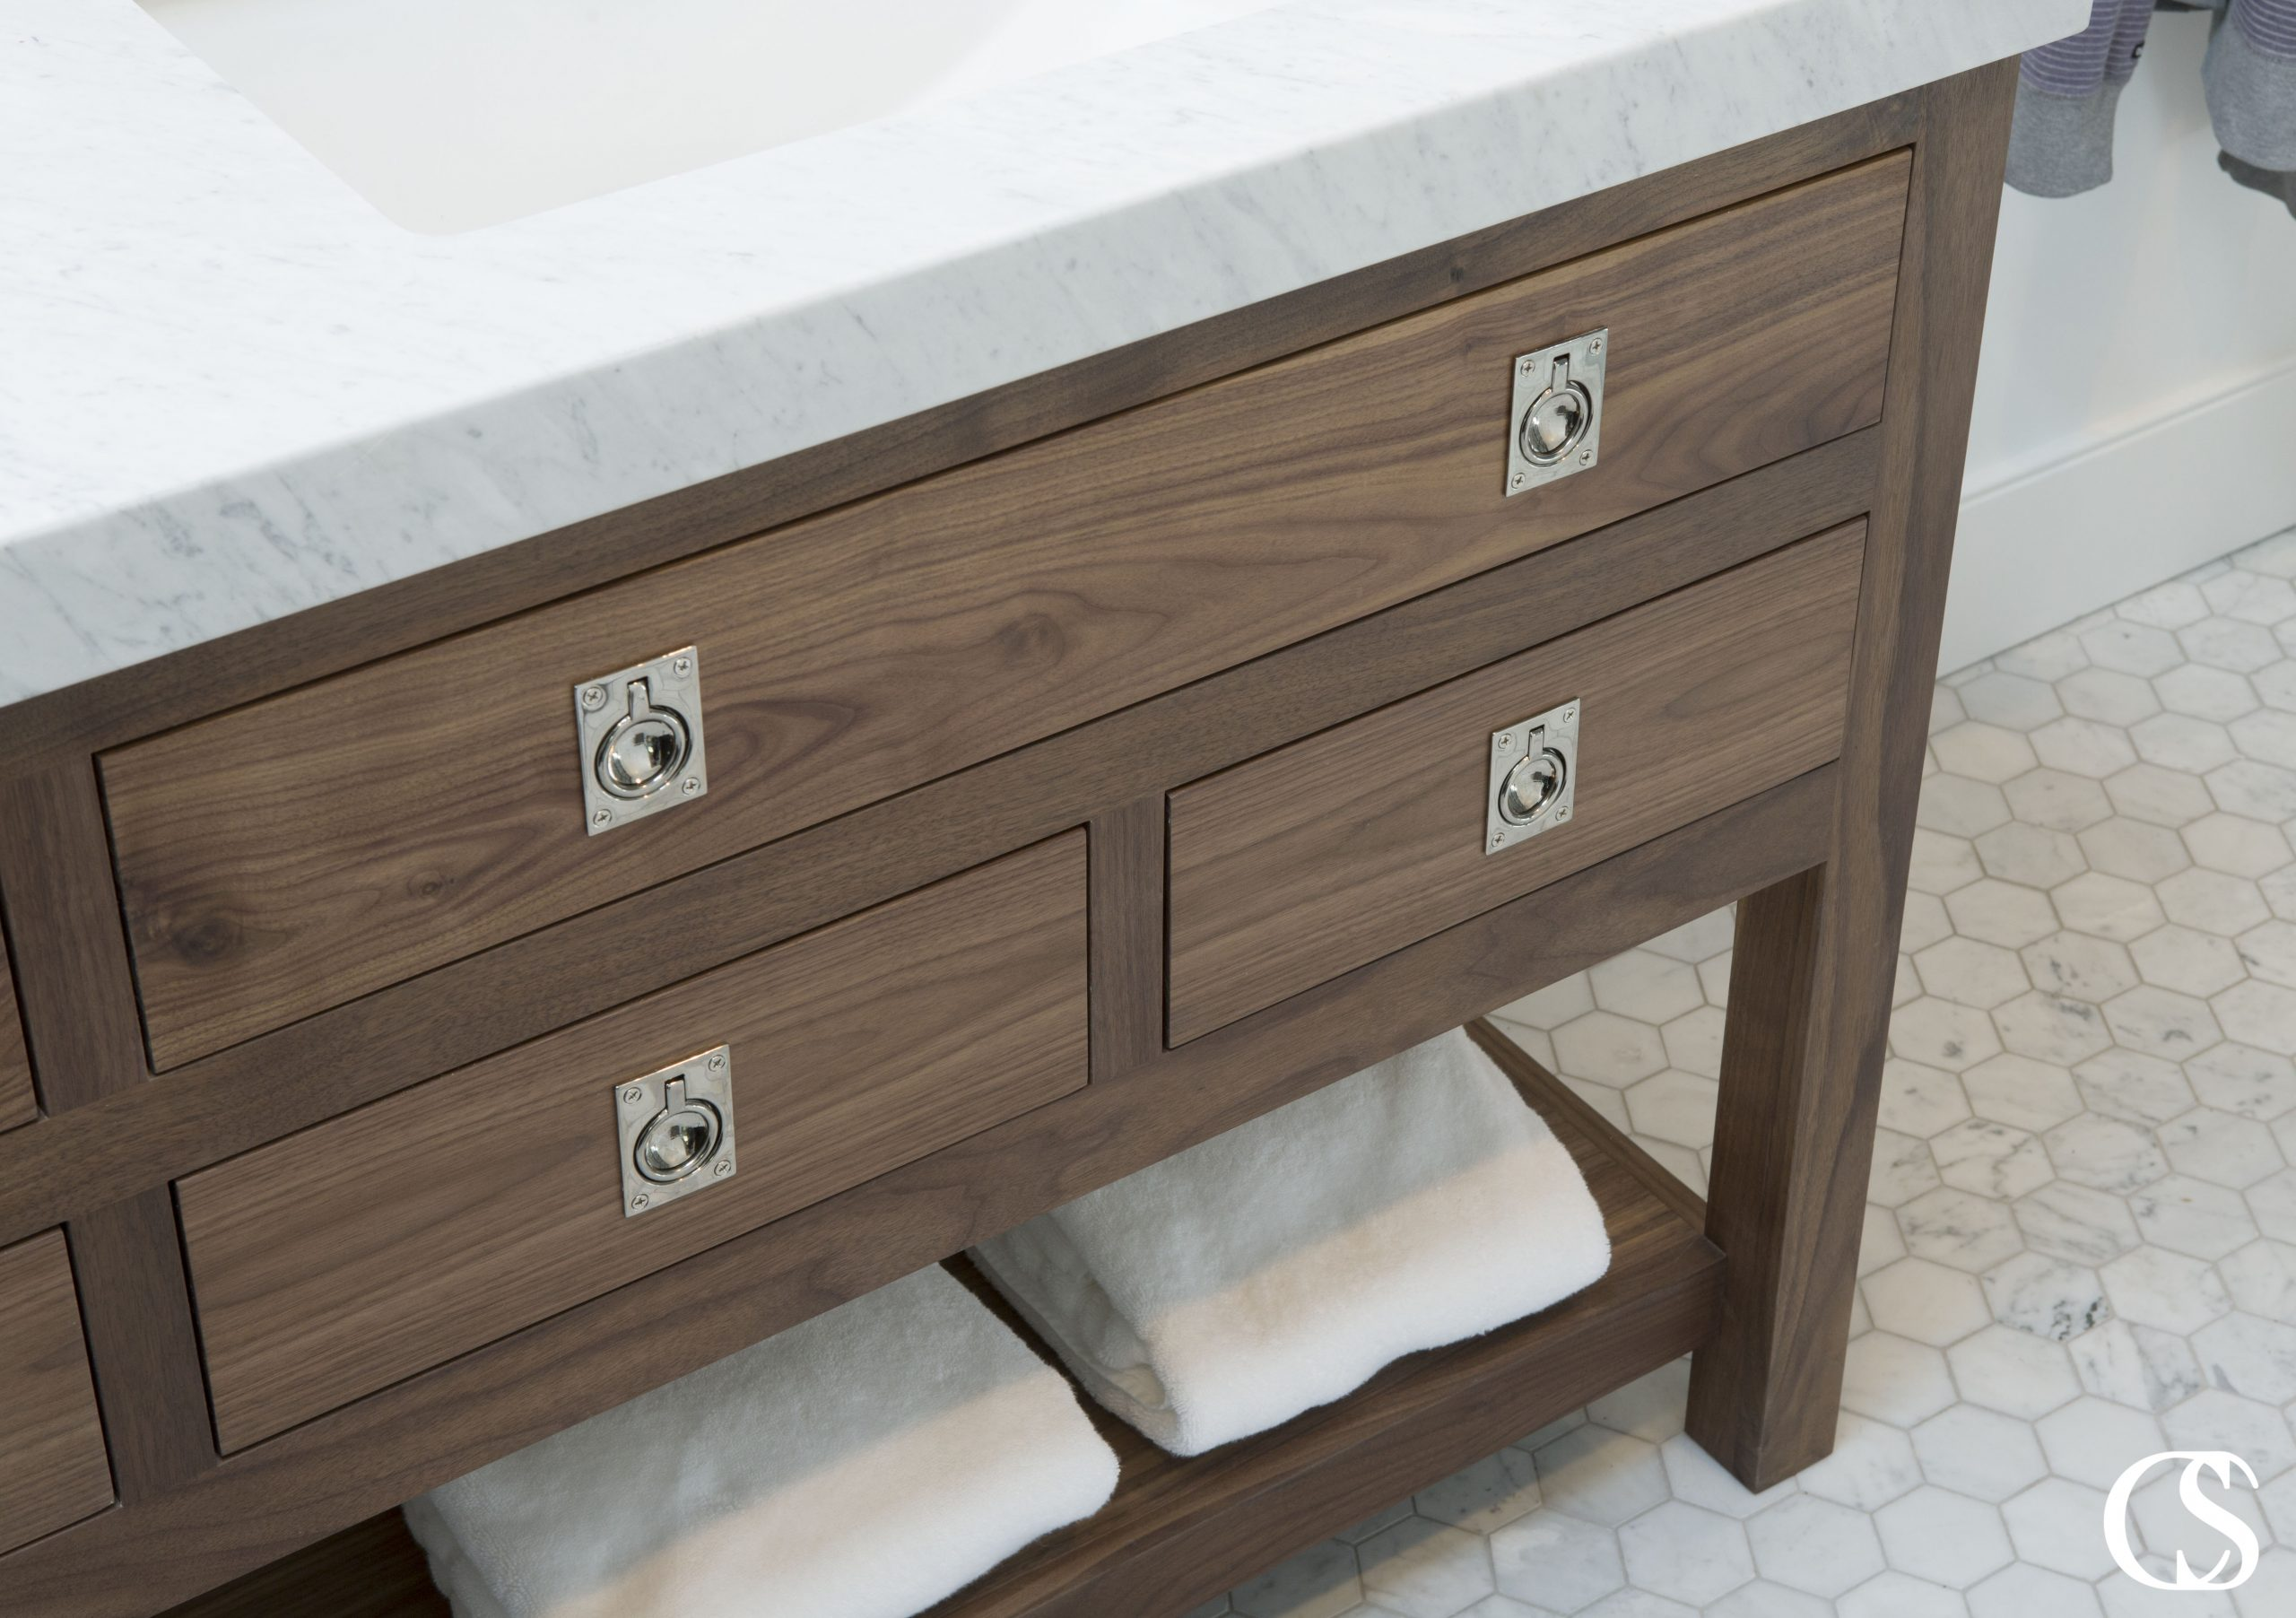 Slab style drawer fronts anyone? This unique custom bathroom cabinet pulls off a look completely different than most bathroom vanities—that's what working with professional cabinet designers will get you.